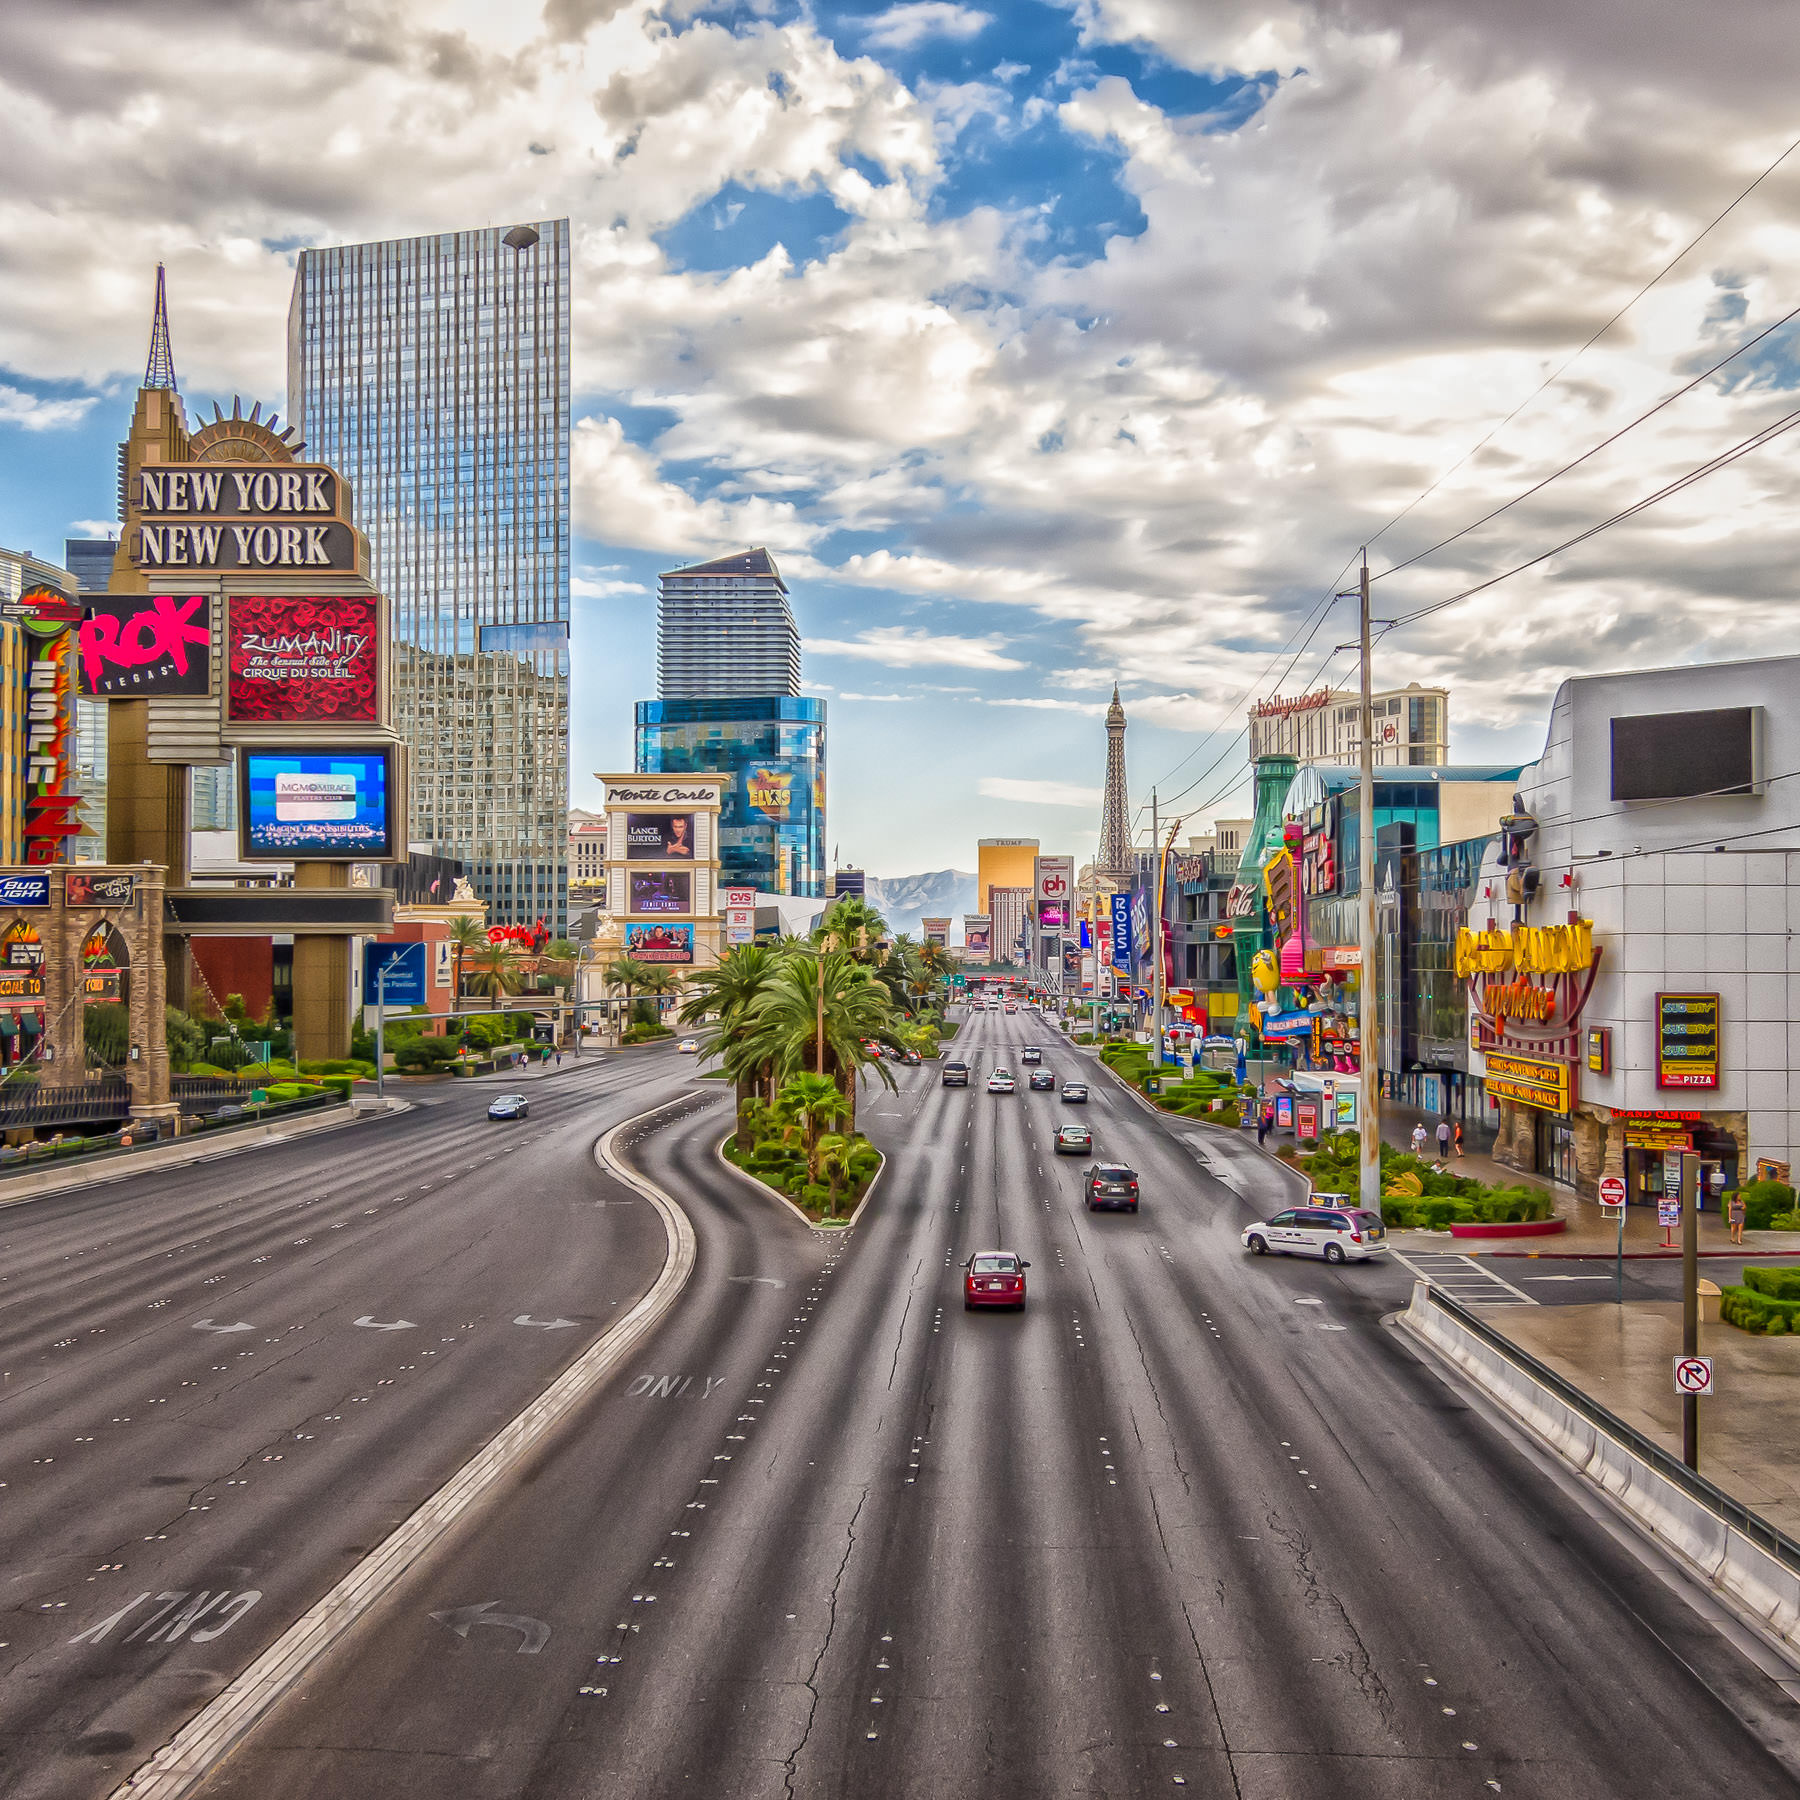 The iconic Las Vegas Strip—also known as Las Vegas Boulevard—stretches northward as seen from a pedestrian bridge between New York New York Hotel & Casino and the MGM Grand.